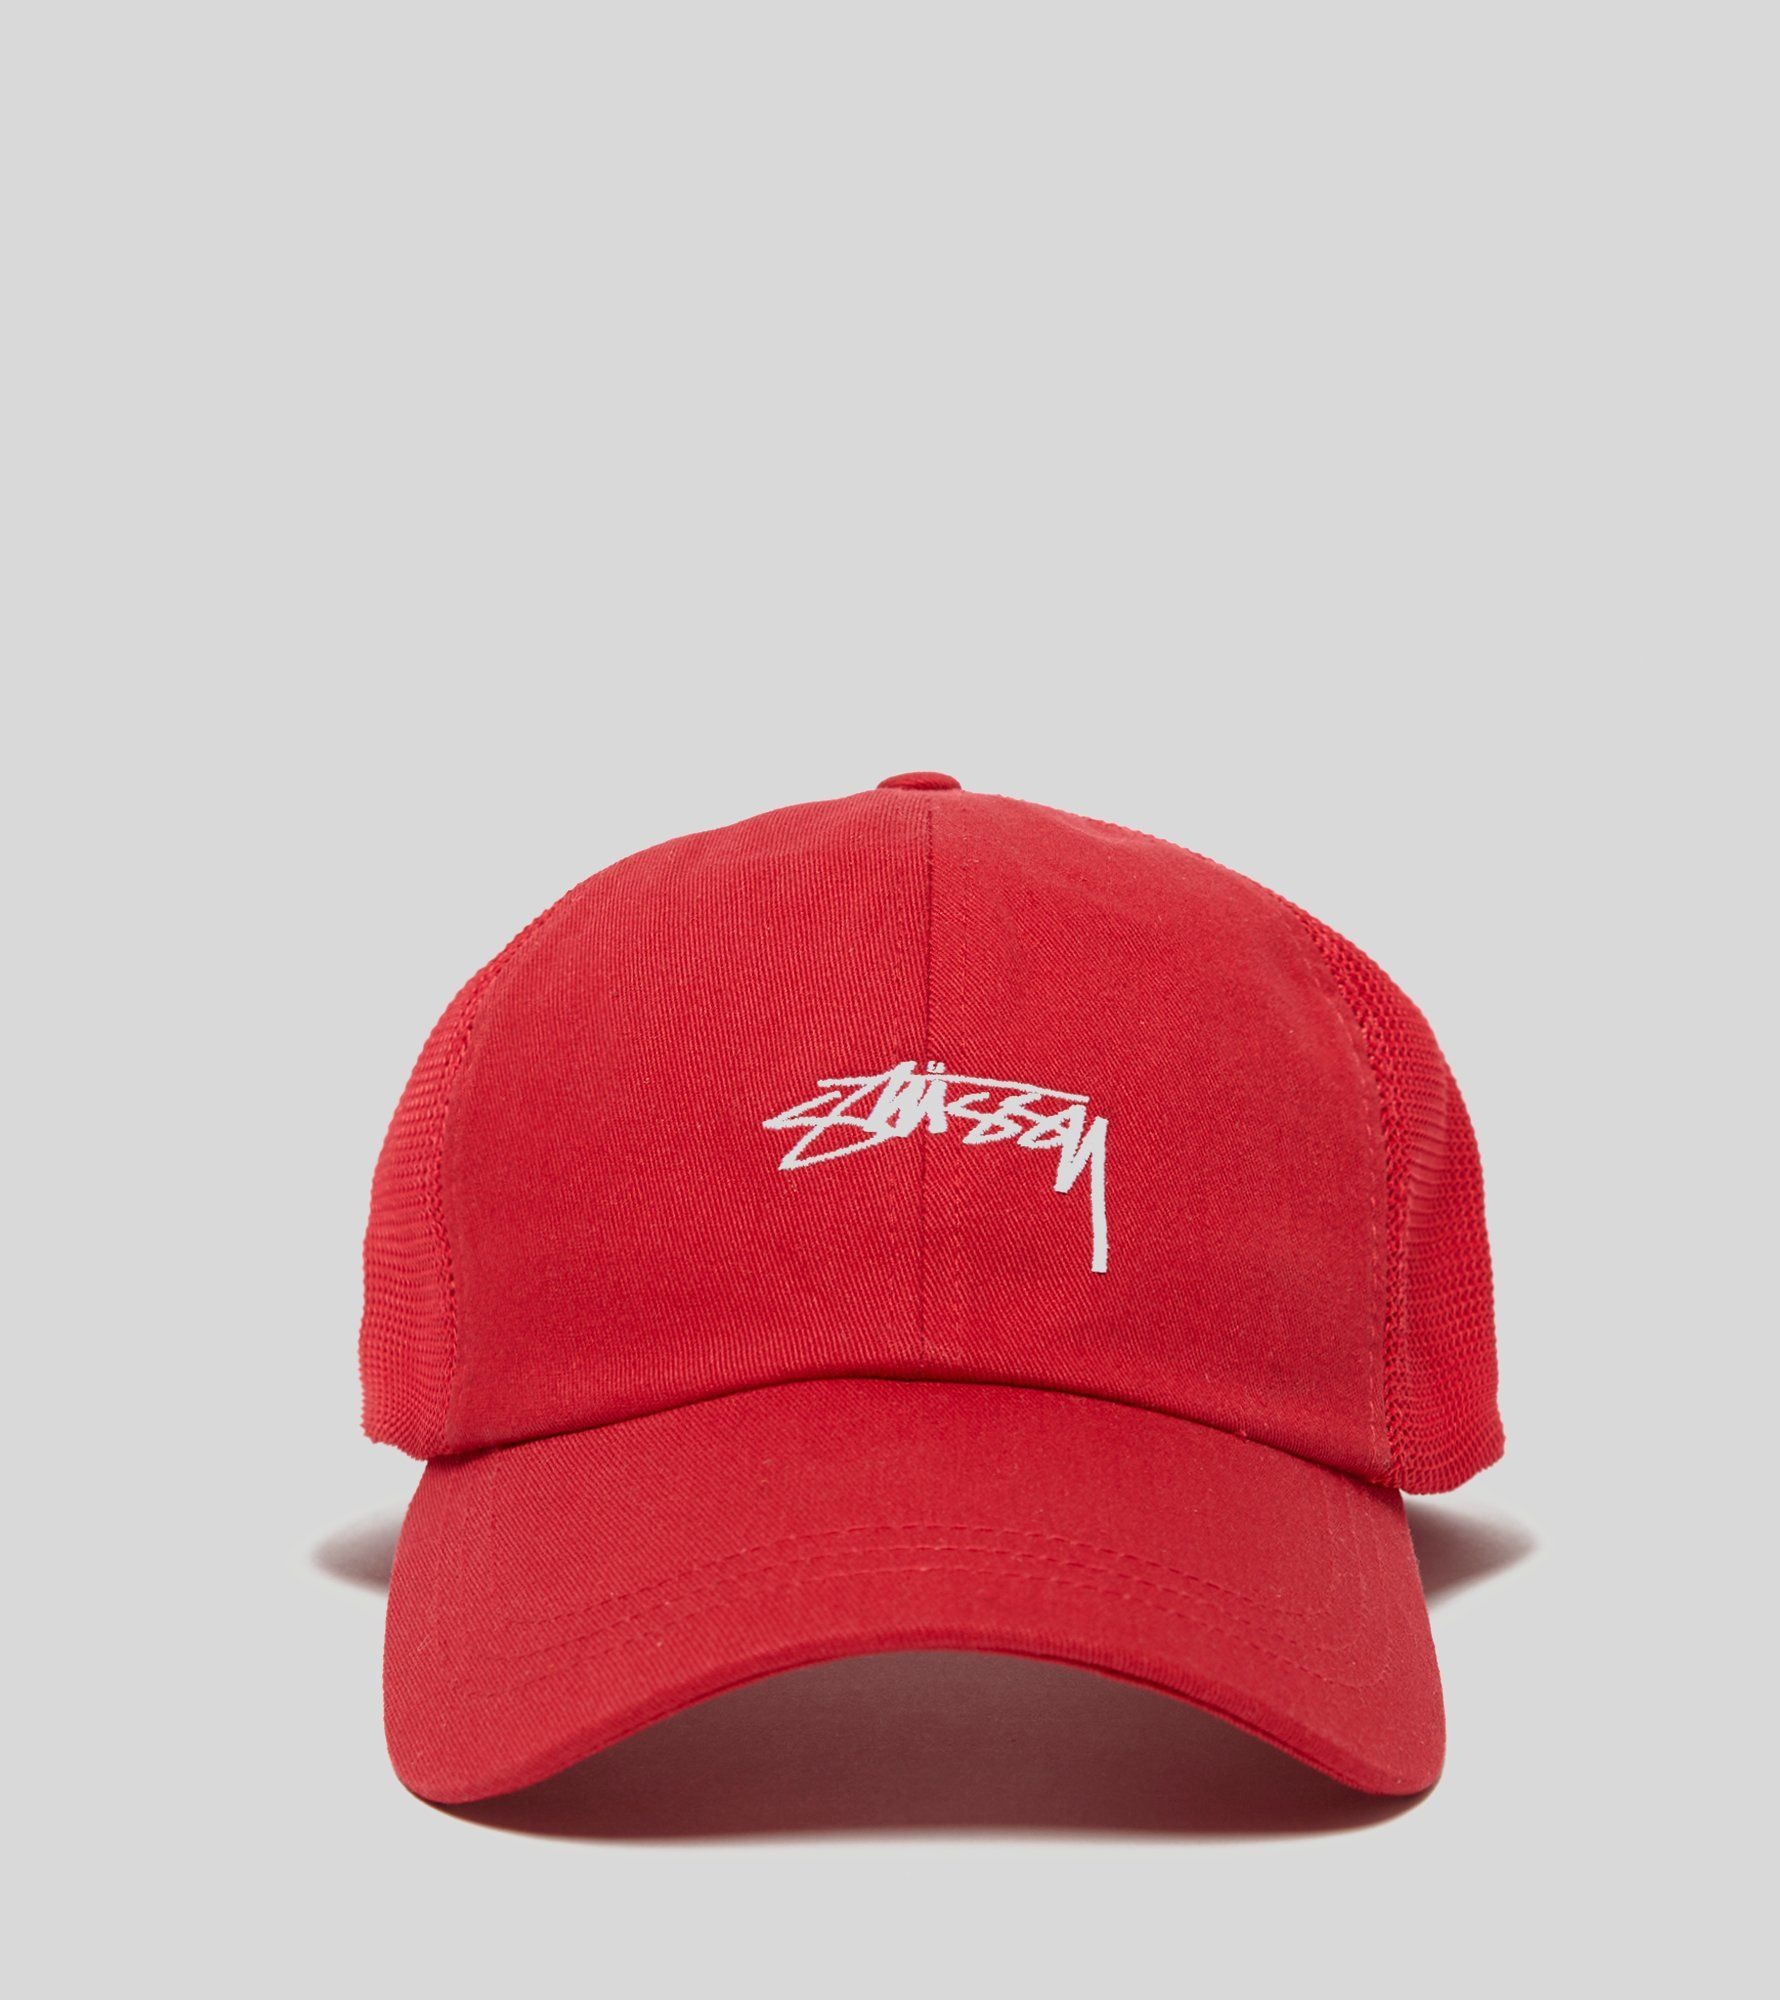 Stussy Stock Low Pro Trucker Cap